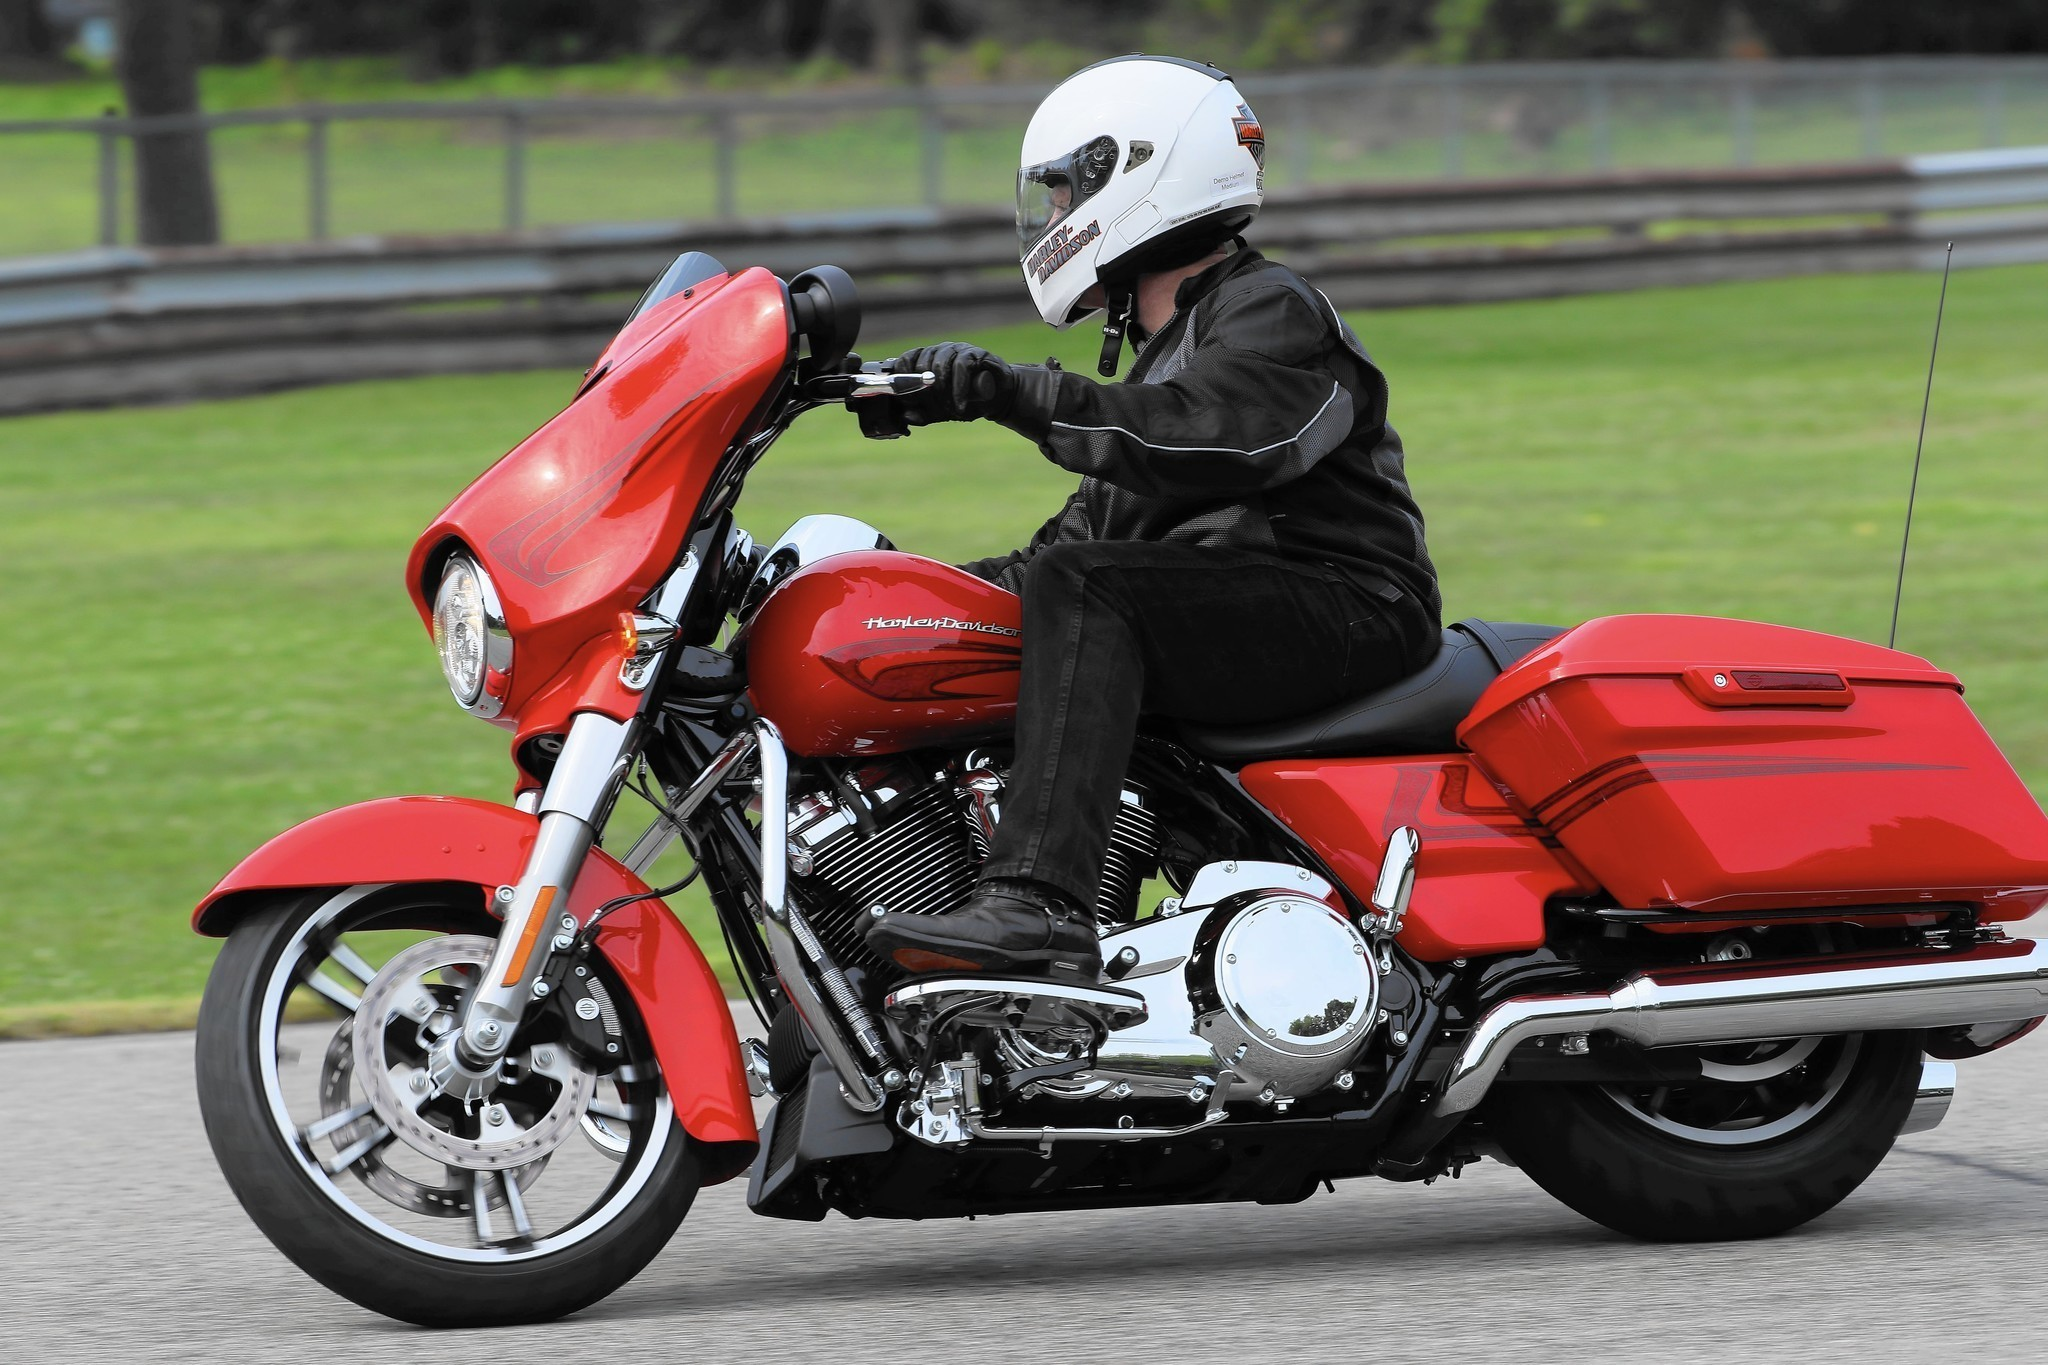 2017 harley davidson touring motorcycles with the all new milwaukee eight engine chicago tribune. Black Bedroom Furniture Sets. Home Design Ideas